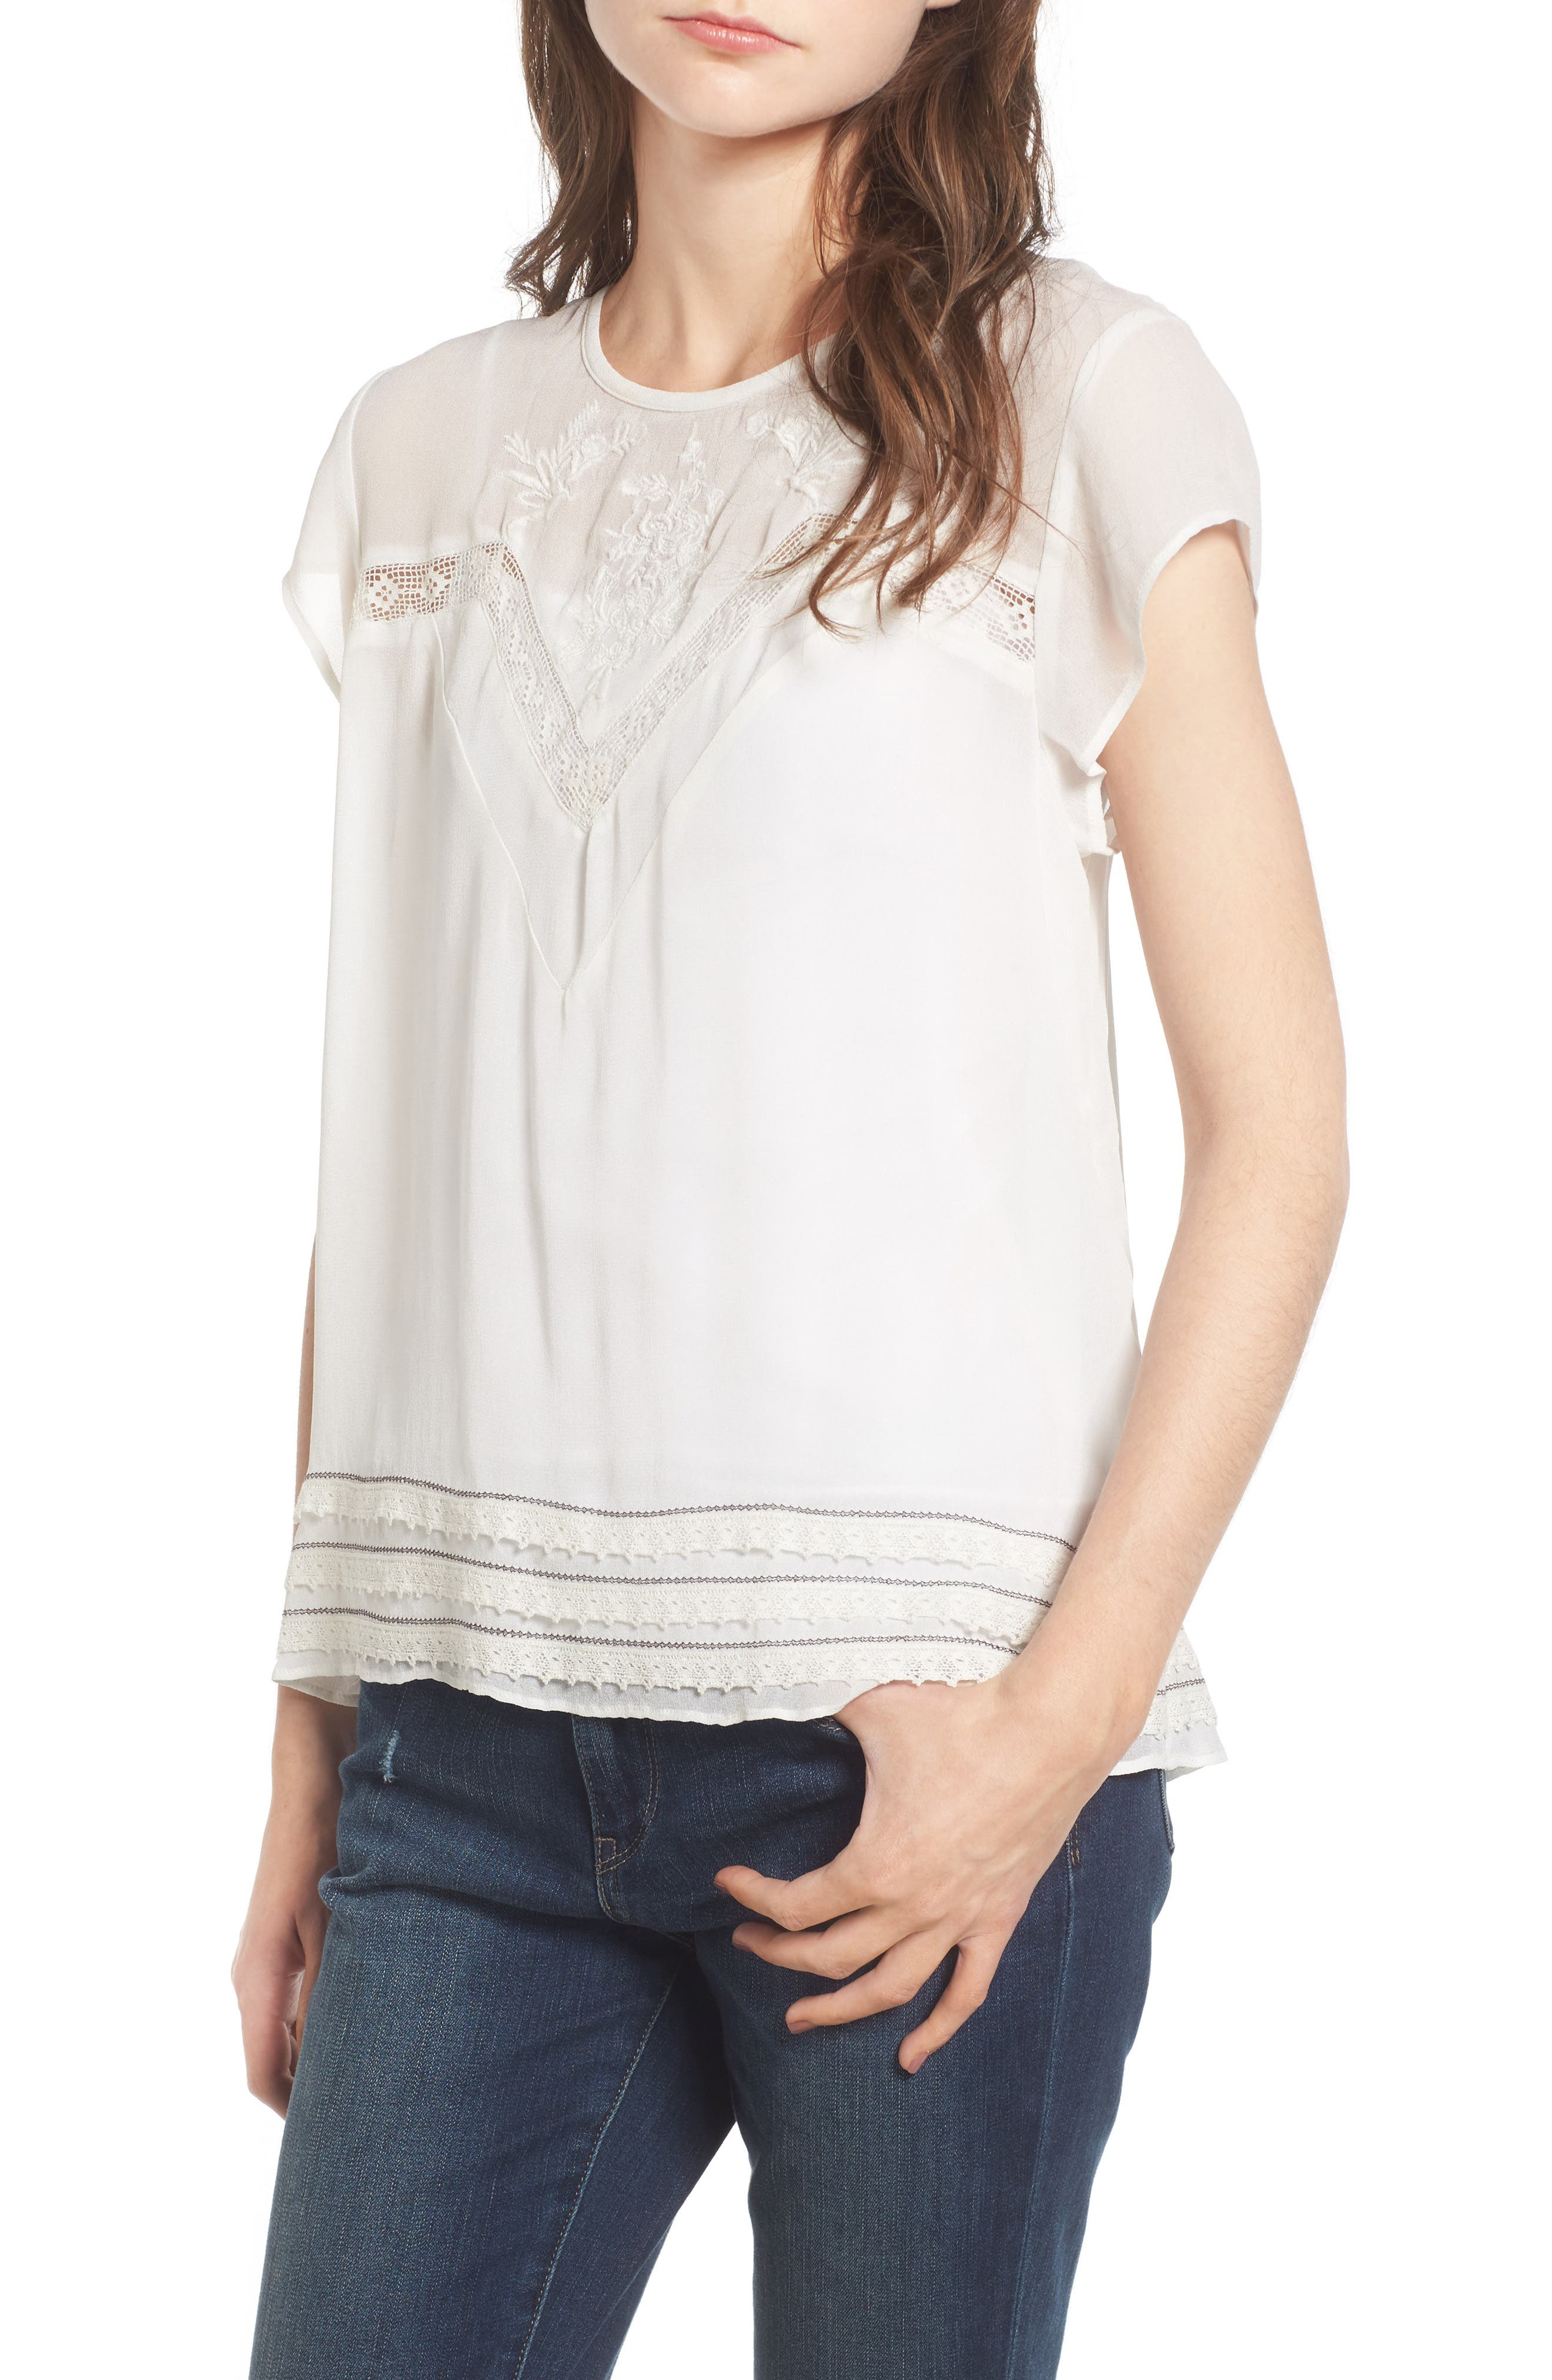 Alternate Image 1 Selected - Hinge Embroidered Lace Yoke Top